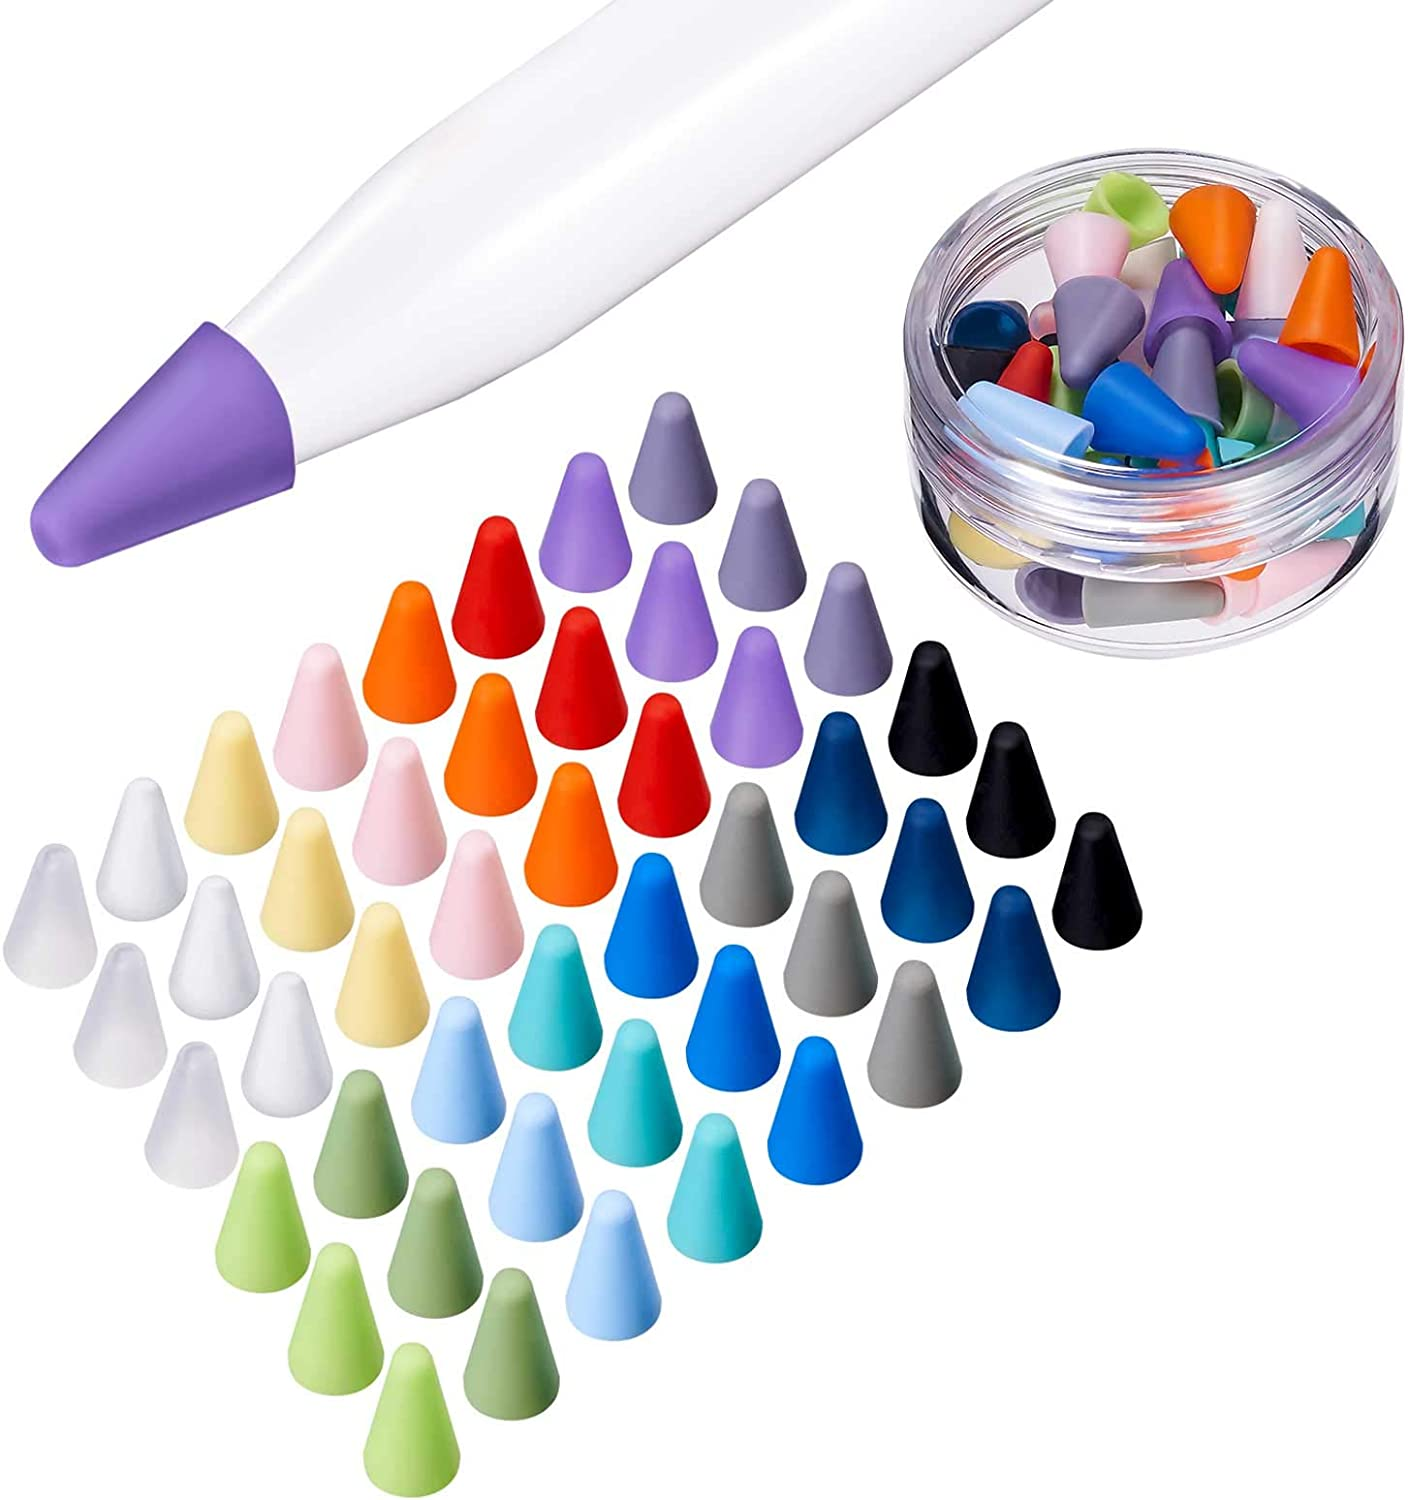 LINGXIU 16 Colors Silicone Nibs Tips Cover Compatible with Apple Pencil 1st and 2nd Generation, Silicone Nibs Caps Slim Lightweight Thin Protective Case Noiseless Drawing Fit iPad Pencil (48 Pack)